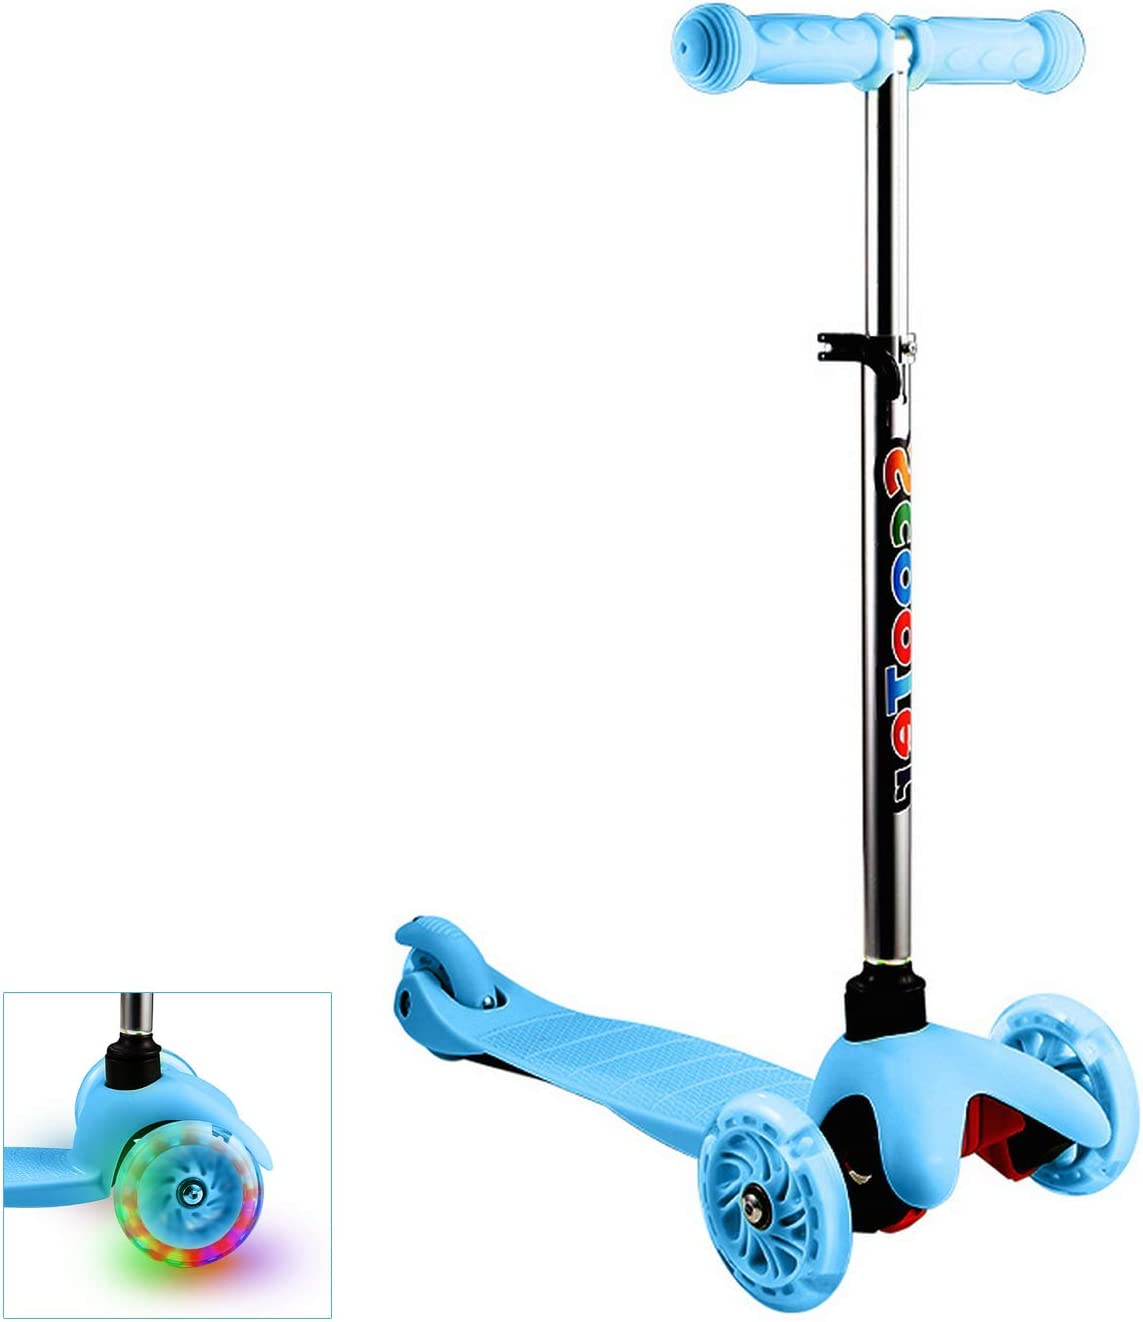 Aceshin Kick Scooter for Kids 3 Wheel, LED Light-Up, Lean to Steer, 4 Adjustable Height Boys Girls